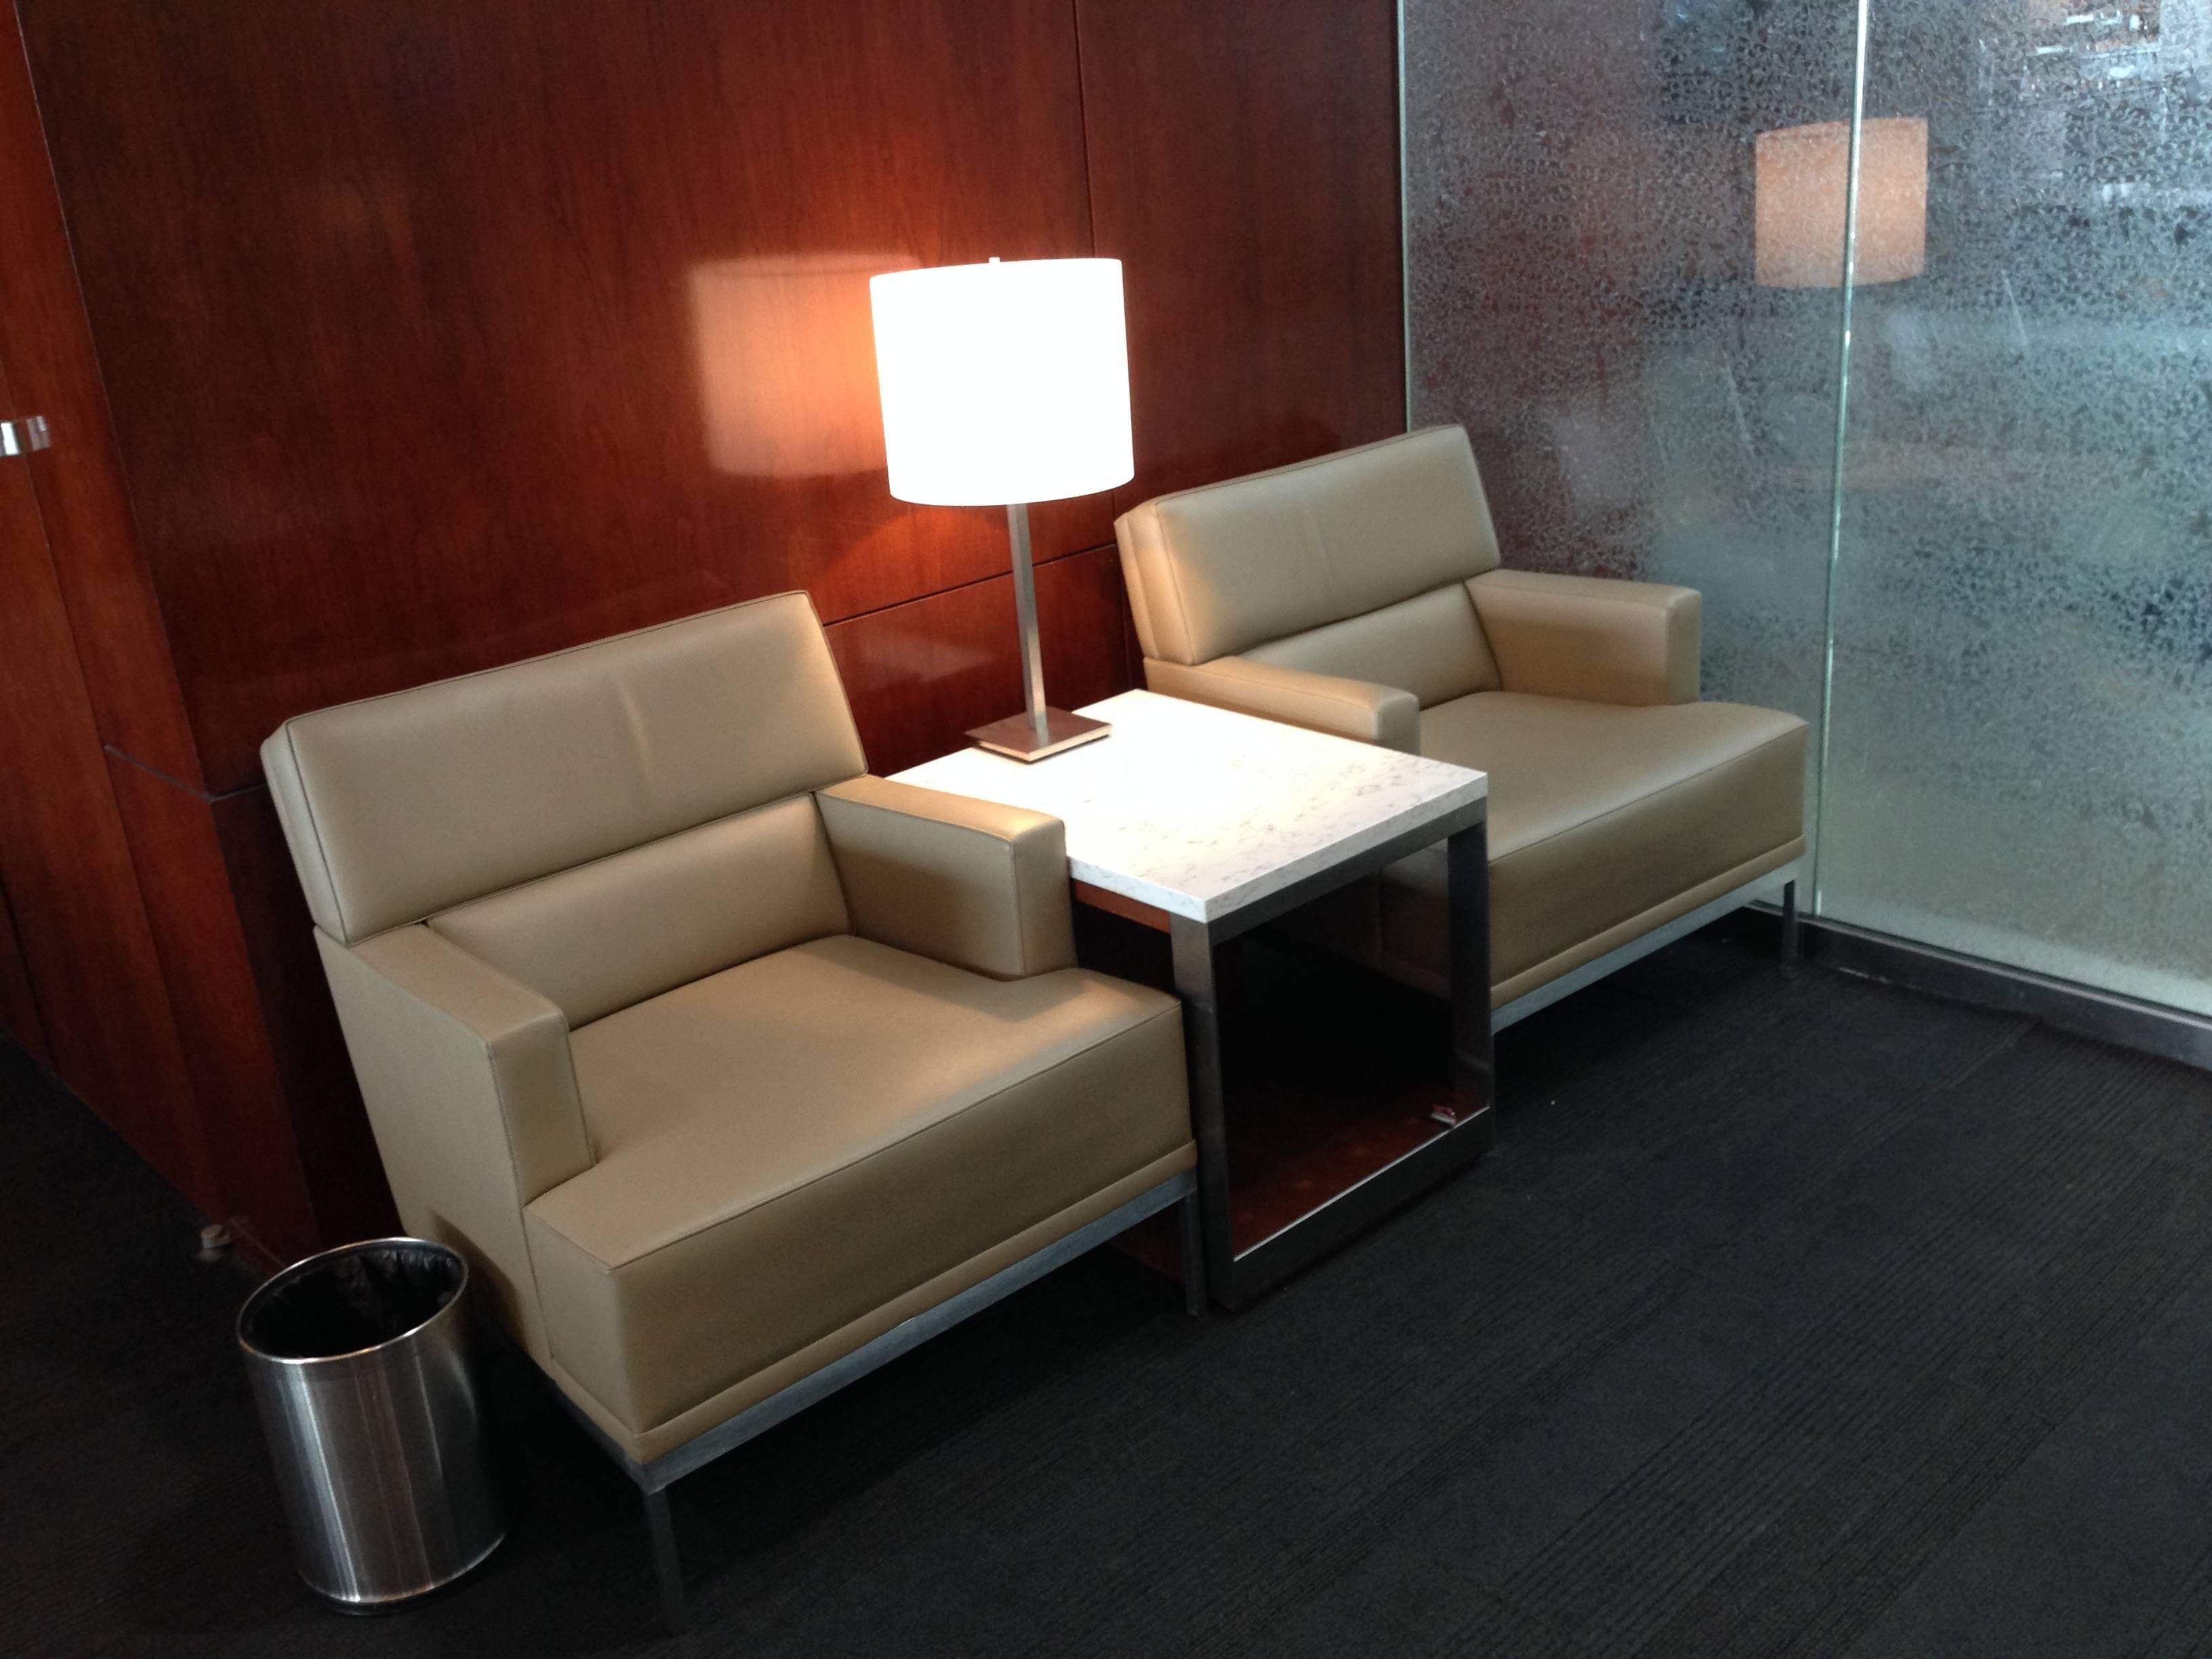 Sala VIP United Club no Aeroporto de Denver (DEN)